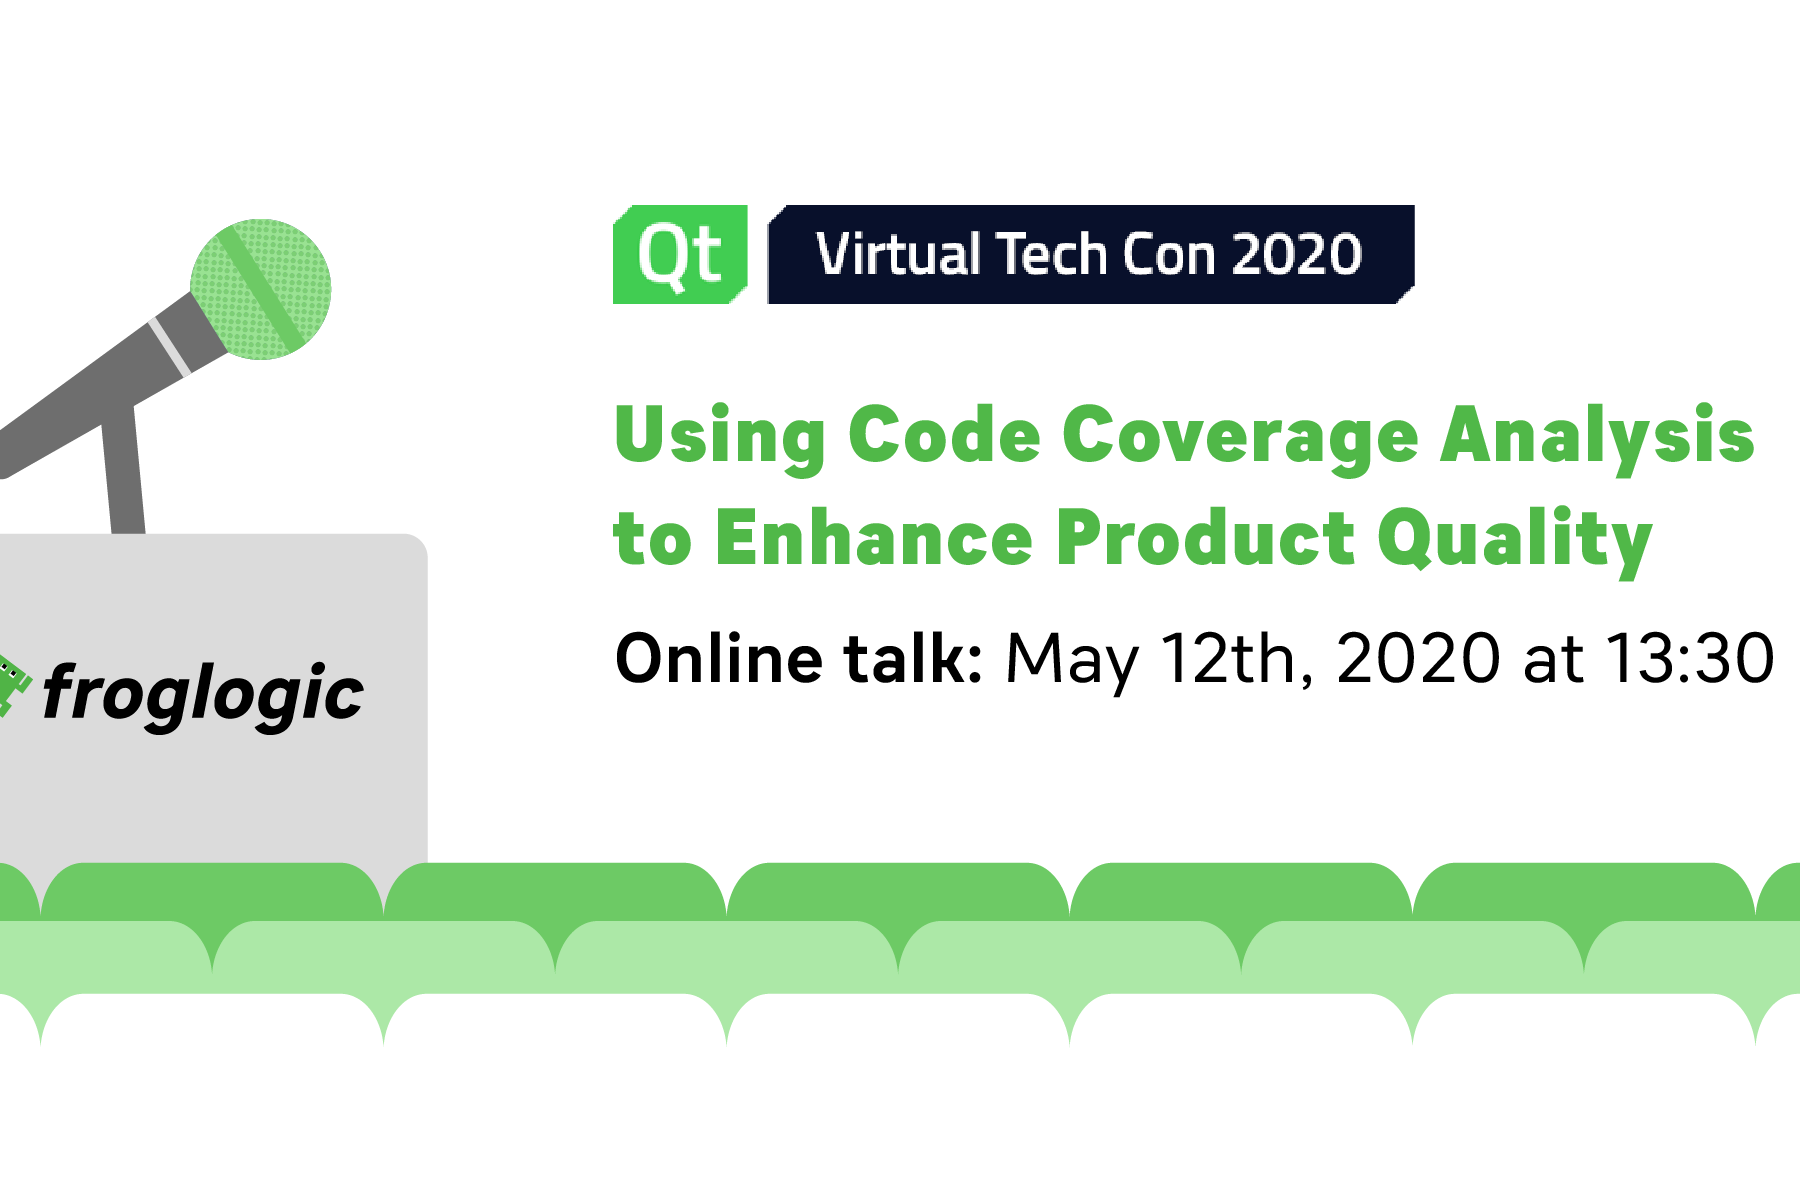 froglogic Tech Talk at Qt Virtual Tech Con 2020